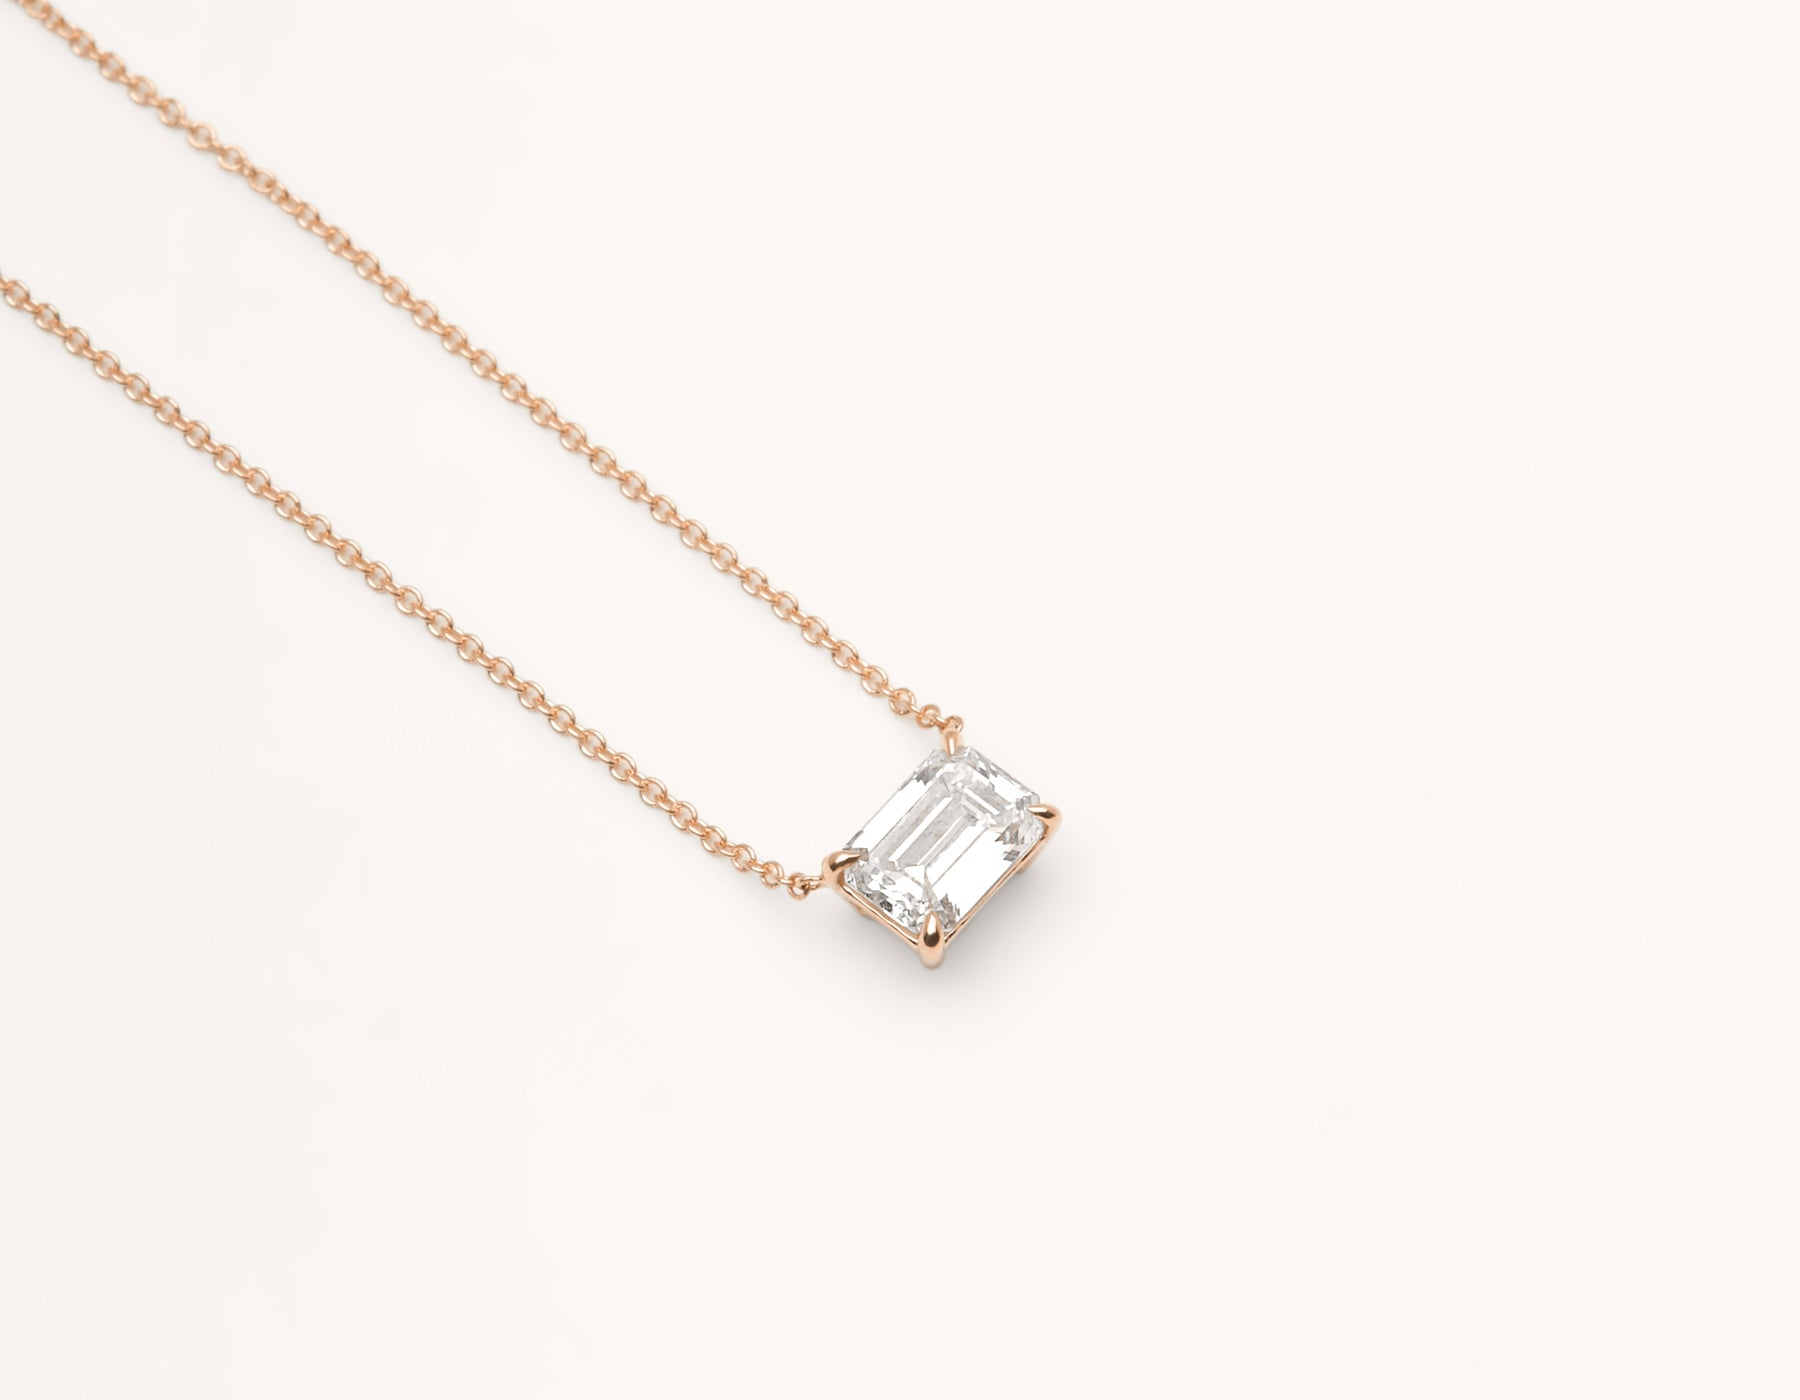 Classic minimalist 18k solid gold 1.0 carat Emerald cut Diamond Necklace on delicate chain Vrai & Oro black label, 18K Rose Gold